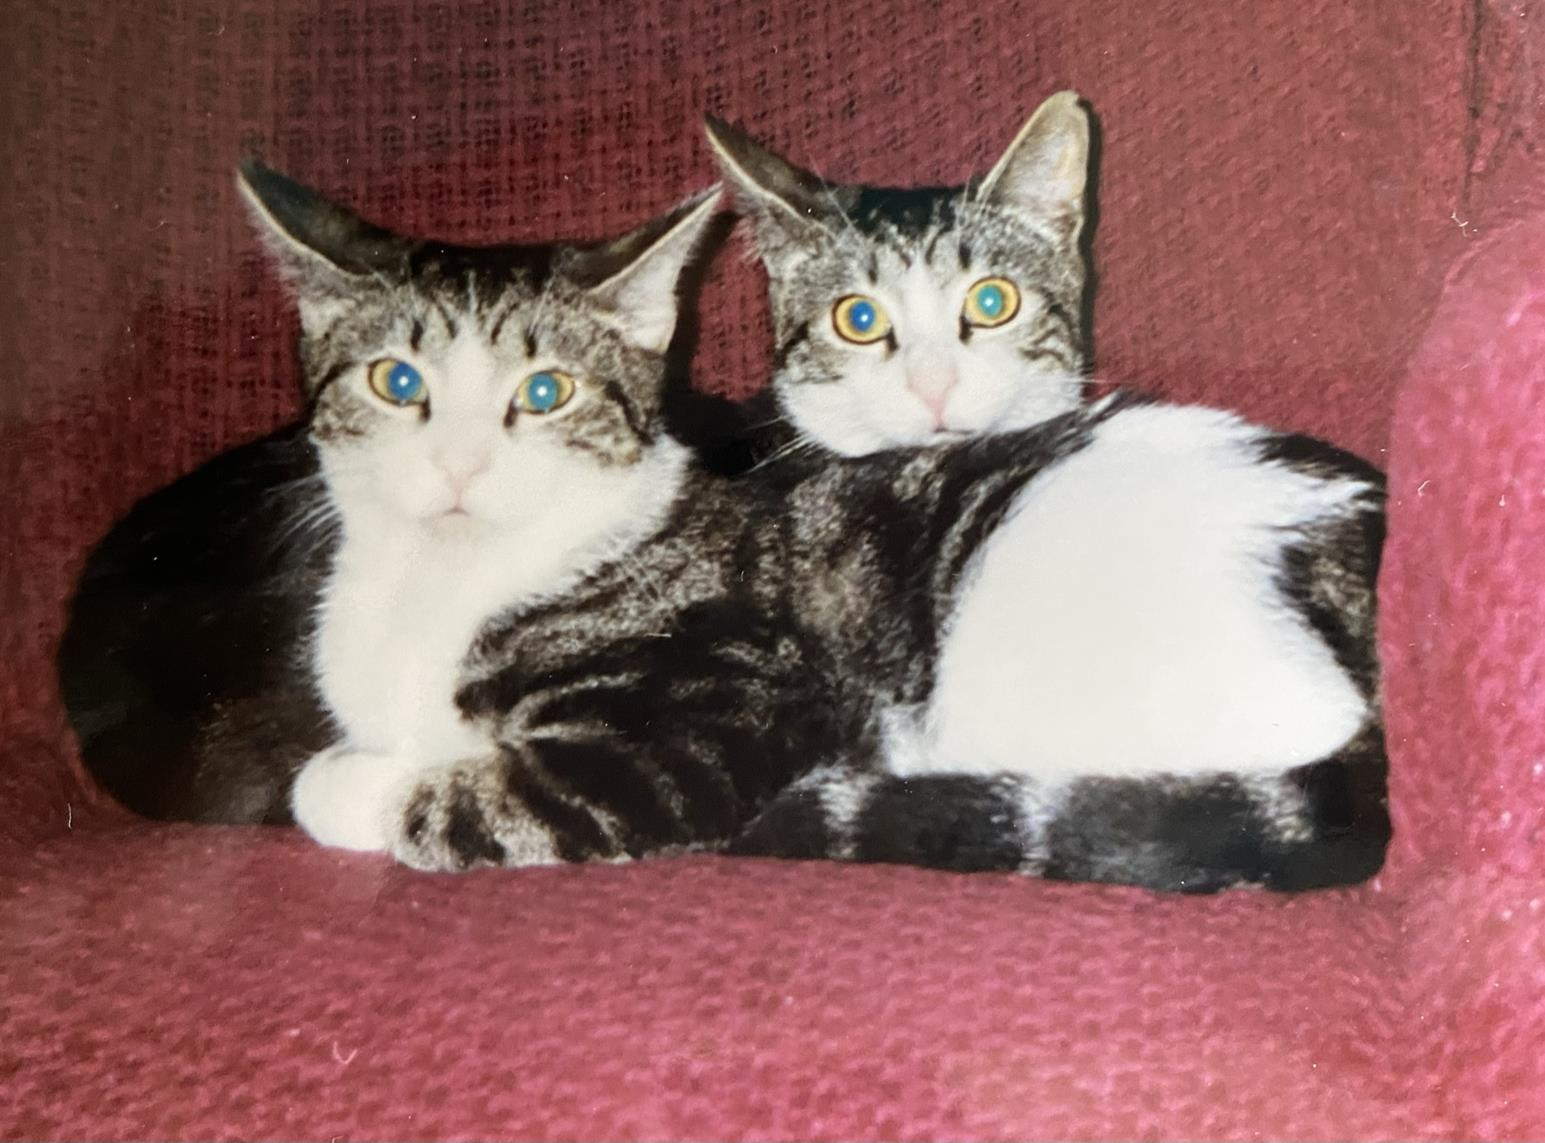 A two-headed tabby monster.